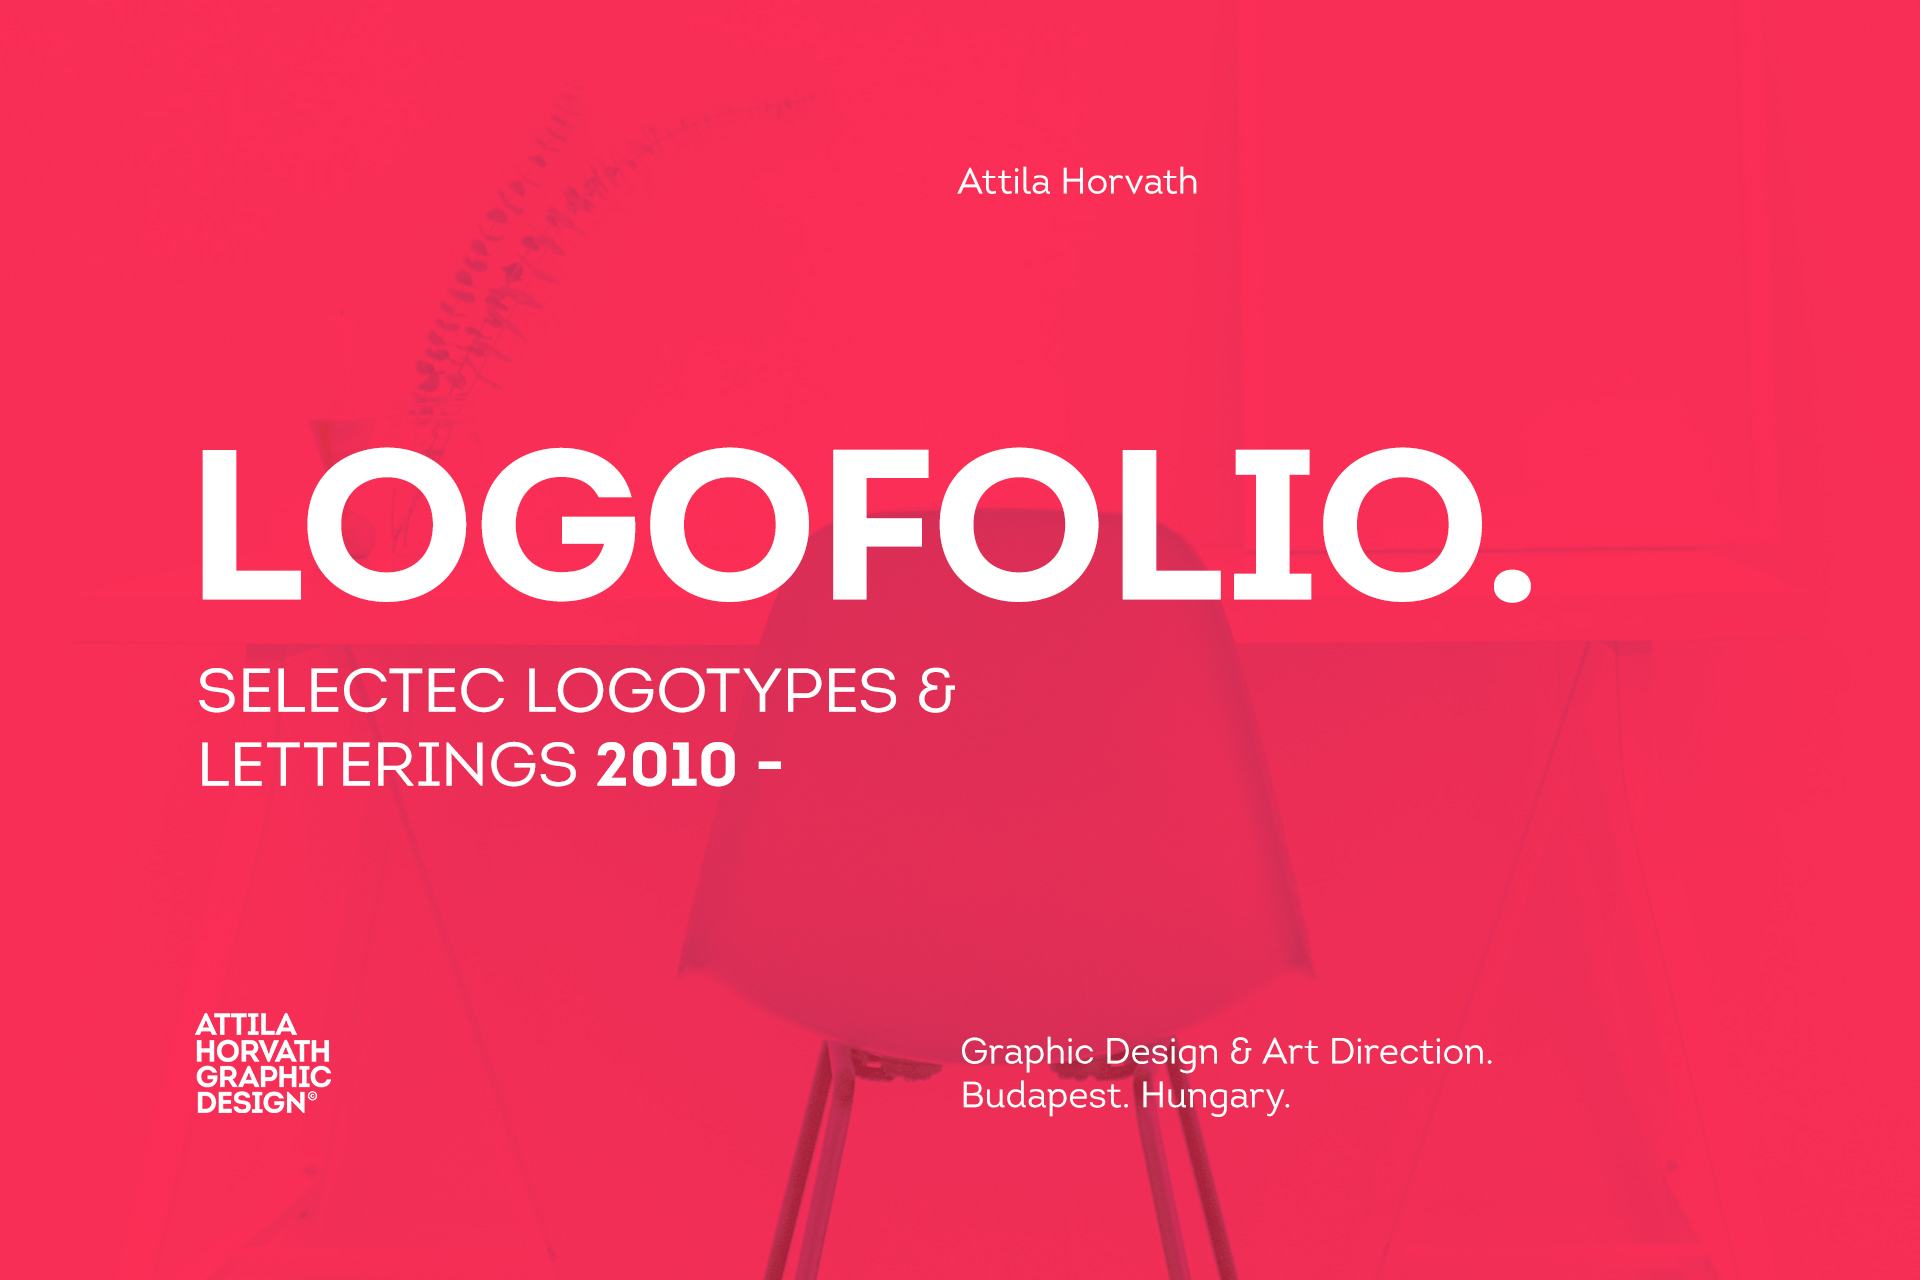 LOGOS™ selected logotypes